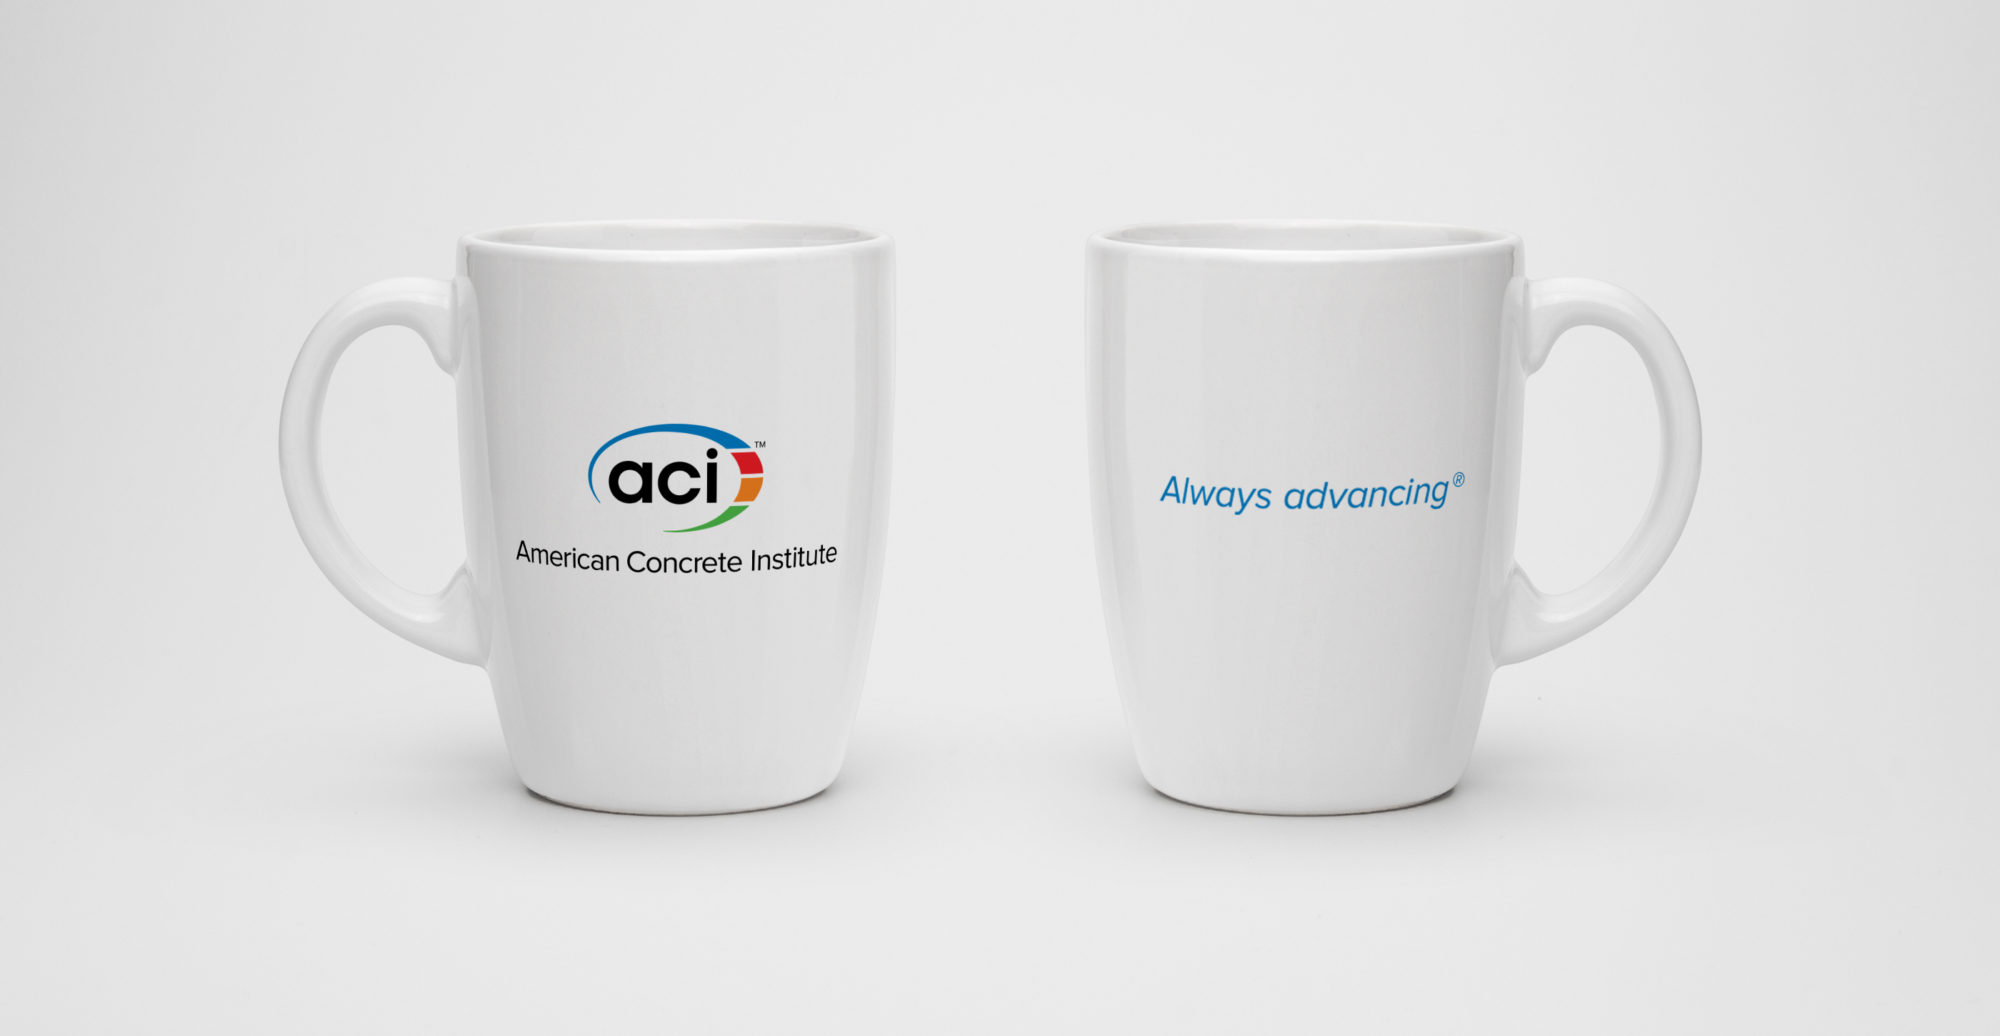 American Concrete Institute mug